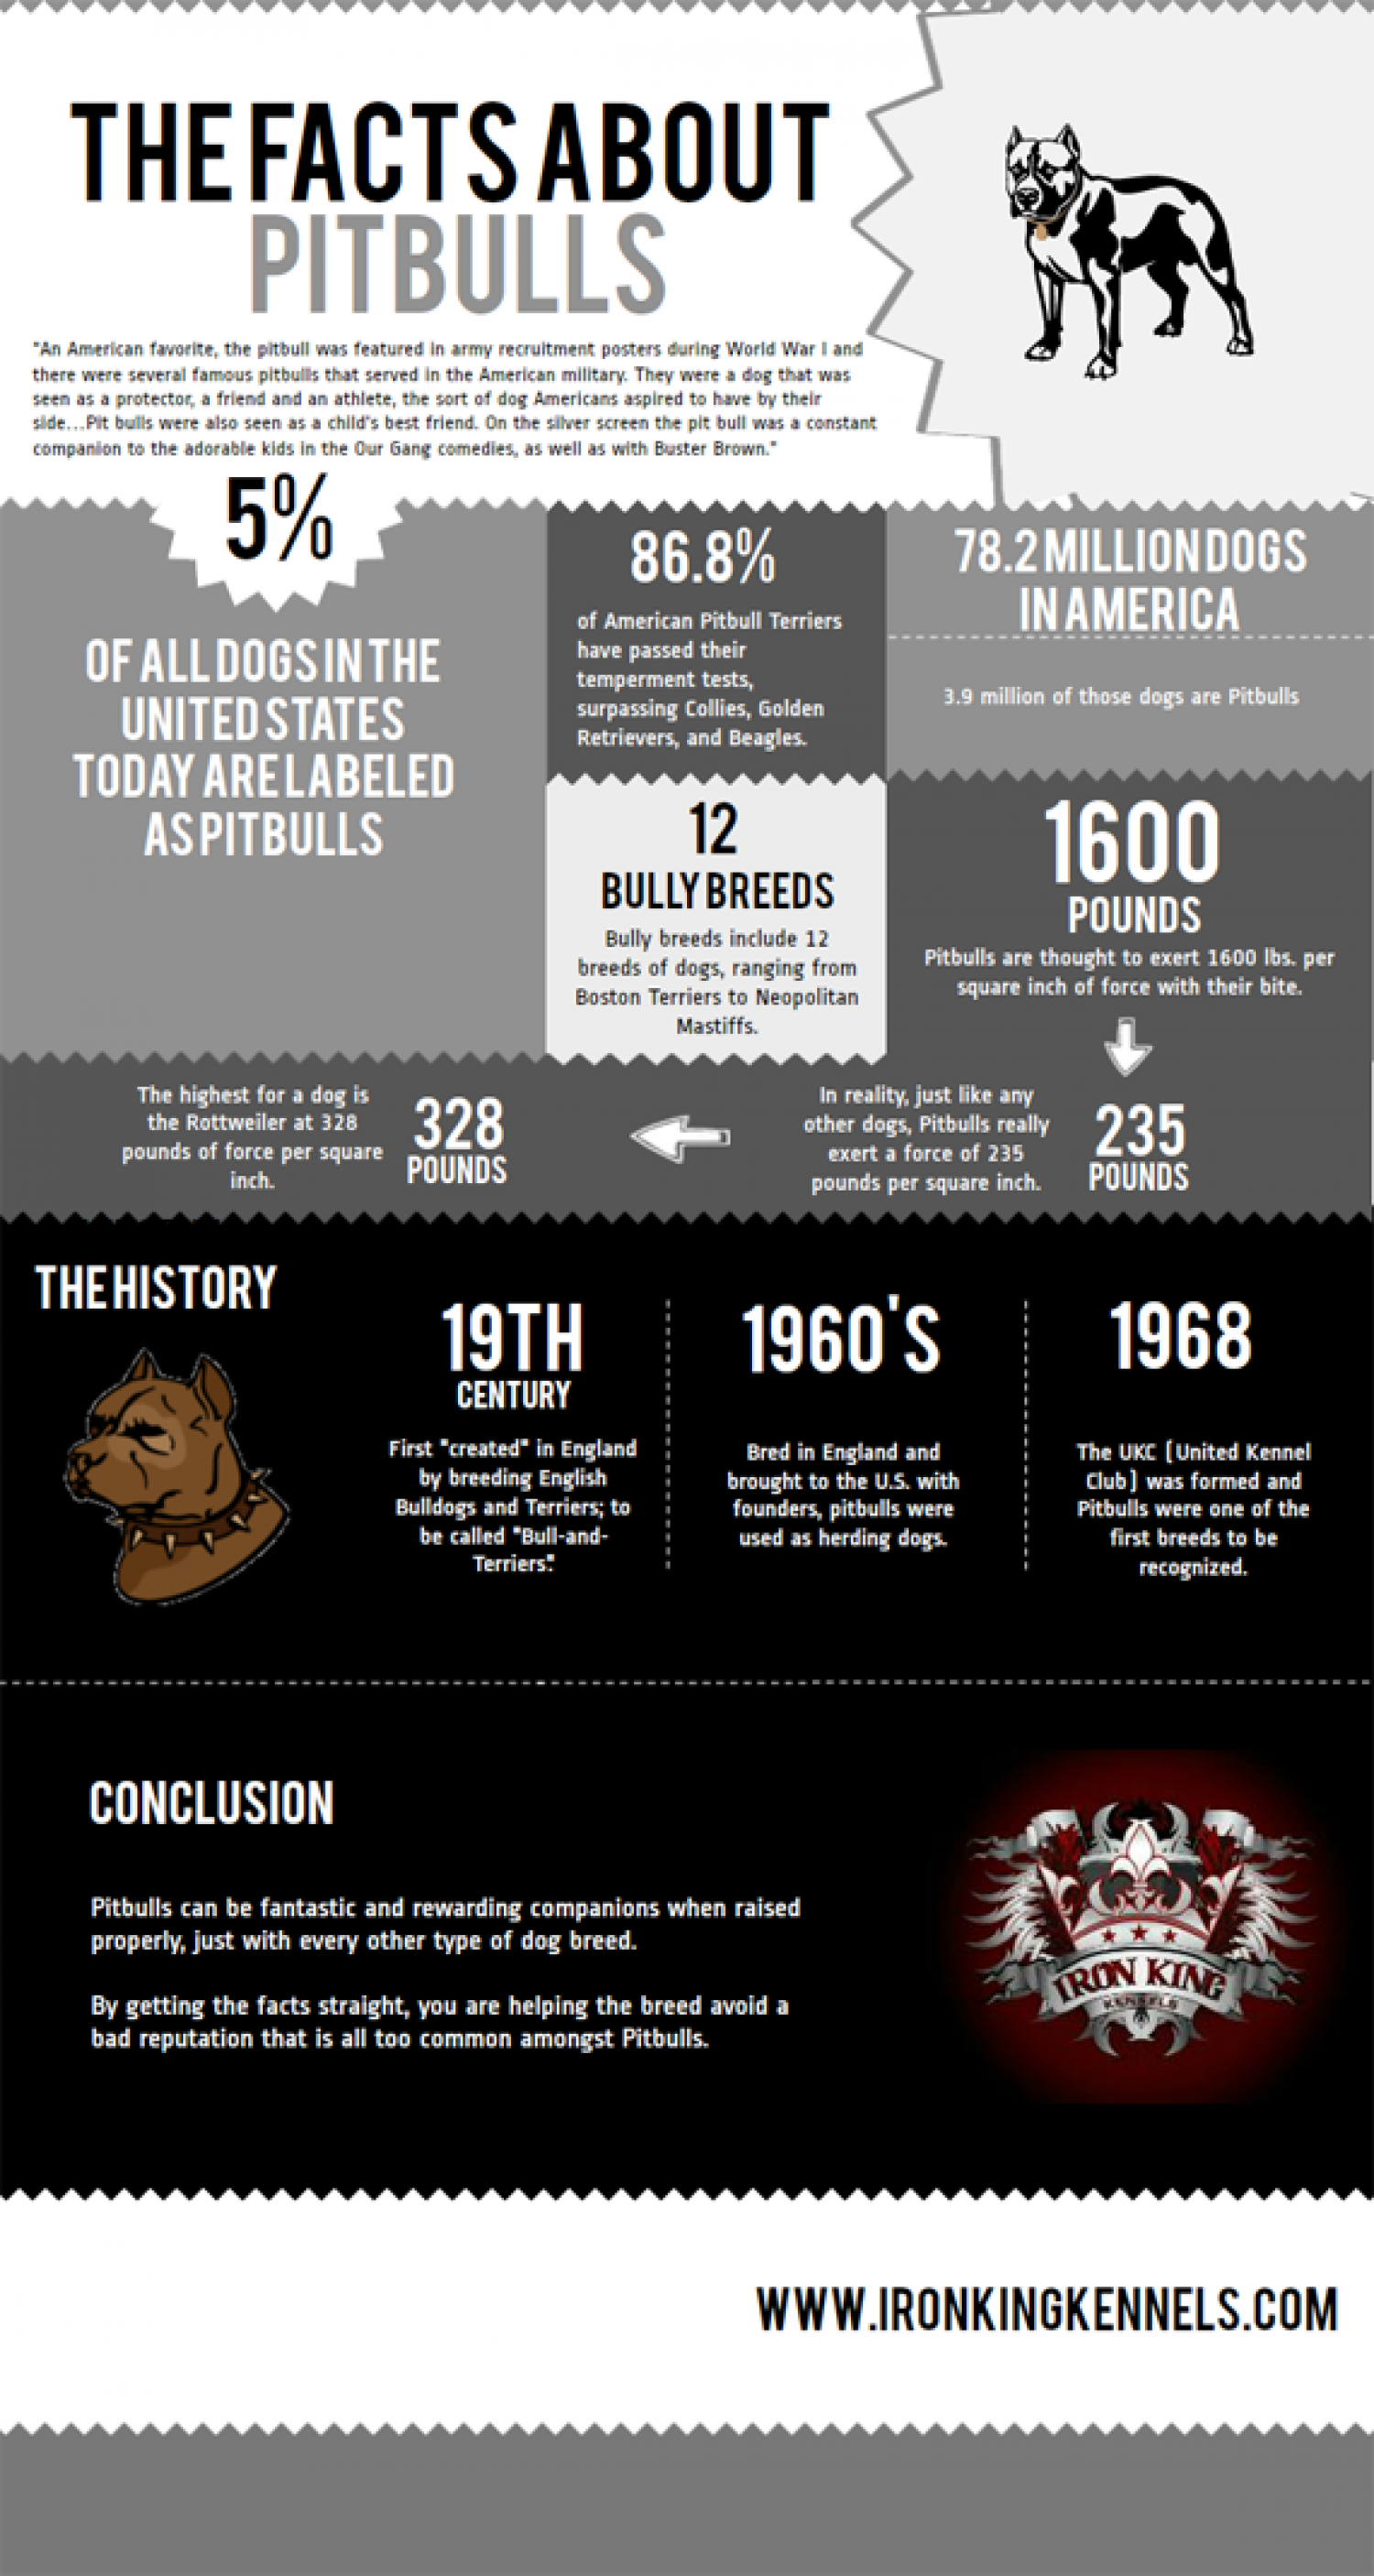 The Facts About Pitbulls Infographic